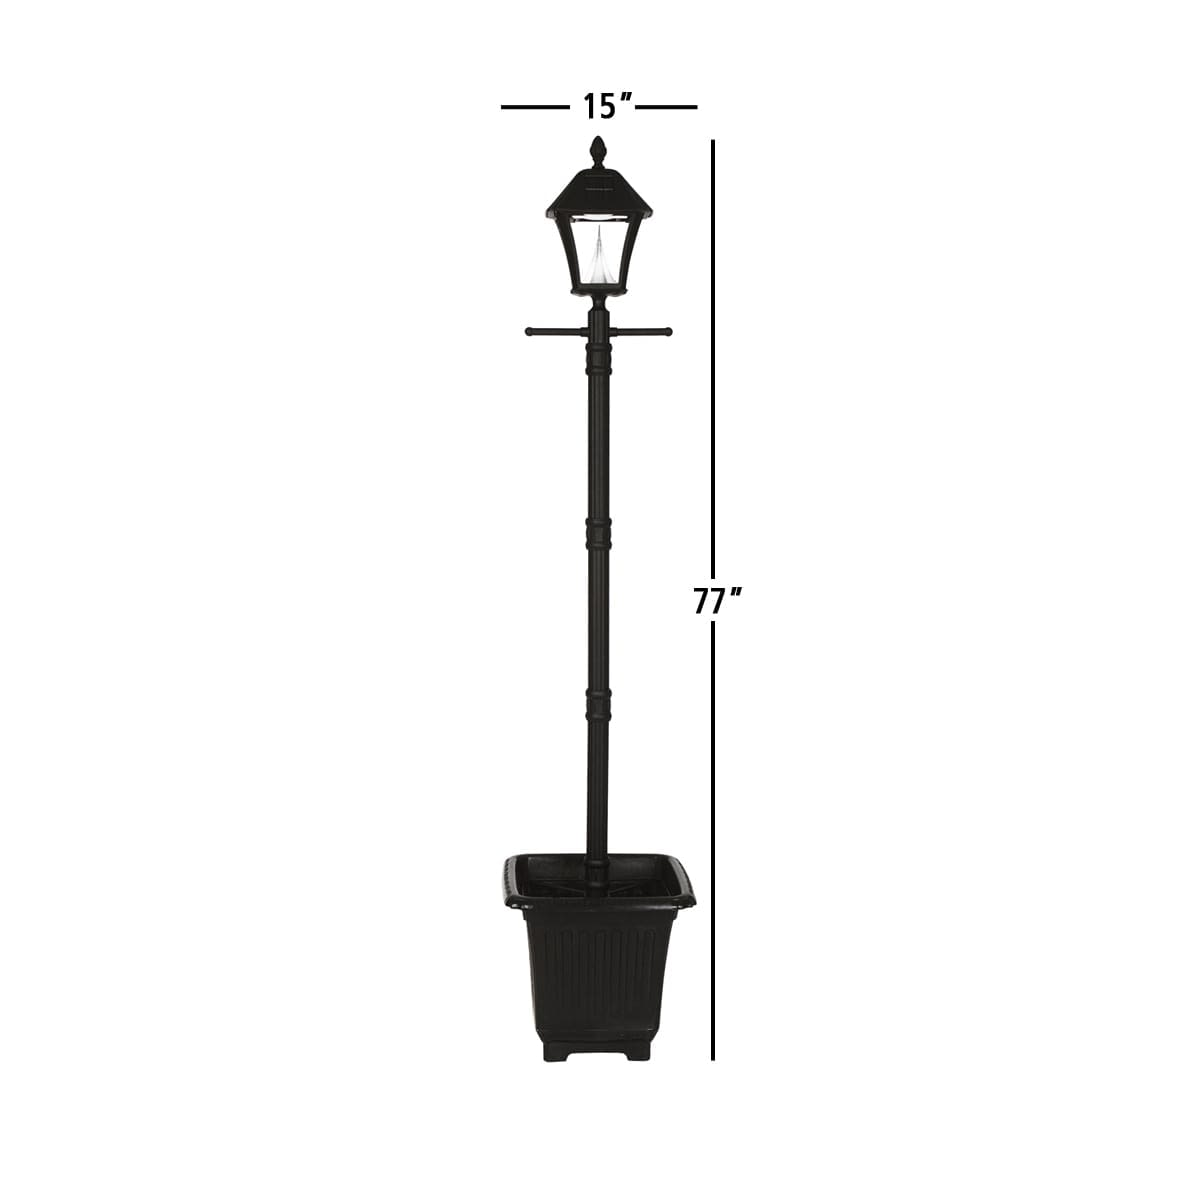 Baytown Solar Lamp Series by Gama Sonic GS-106PL Measurements